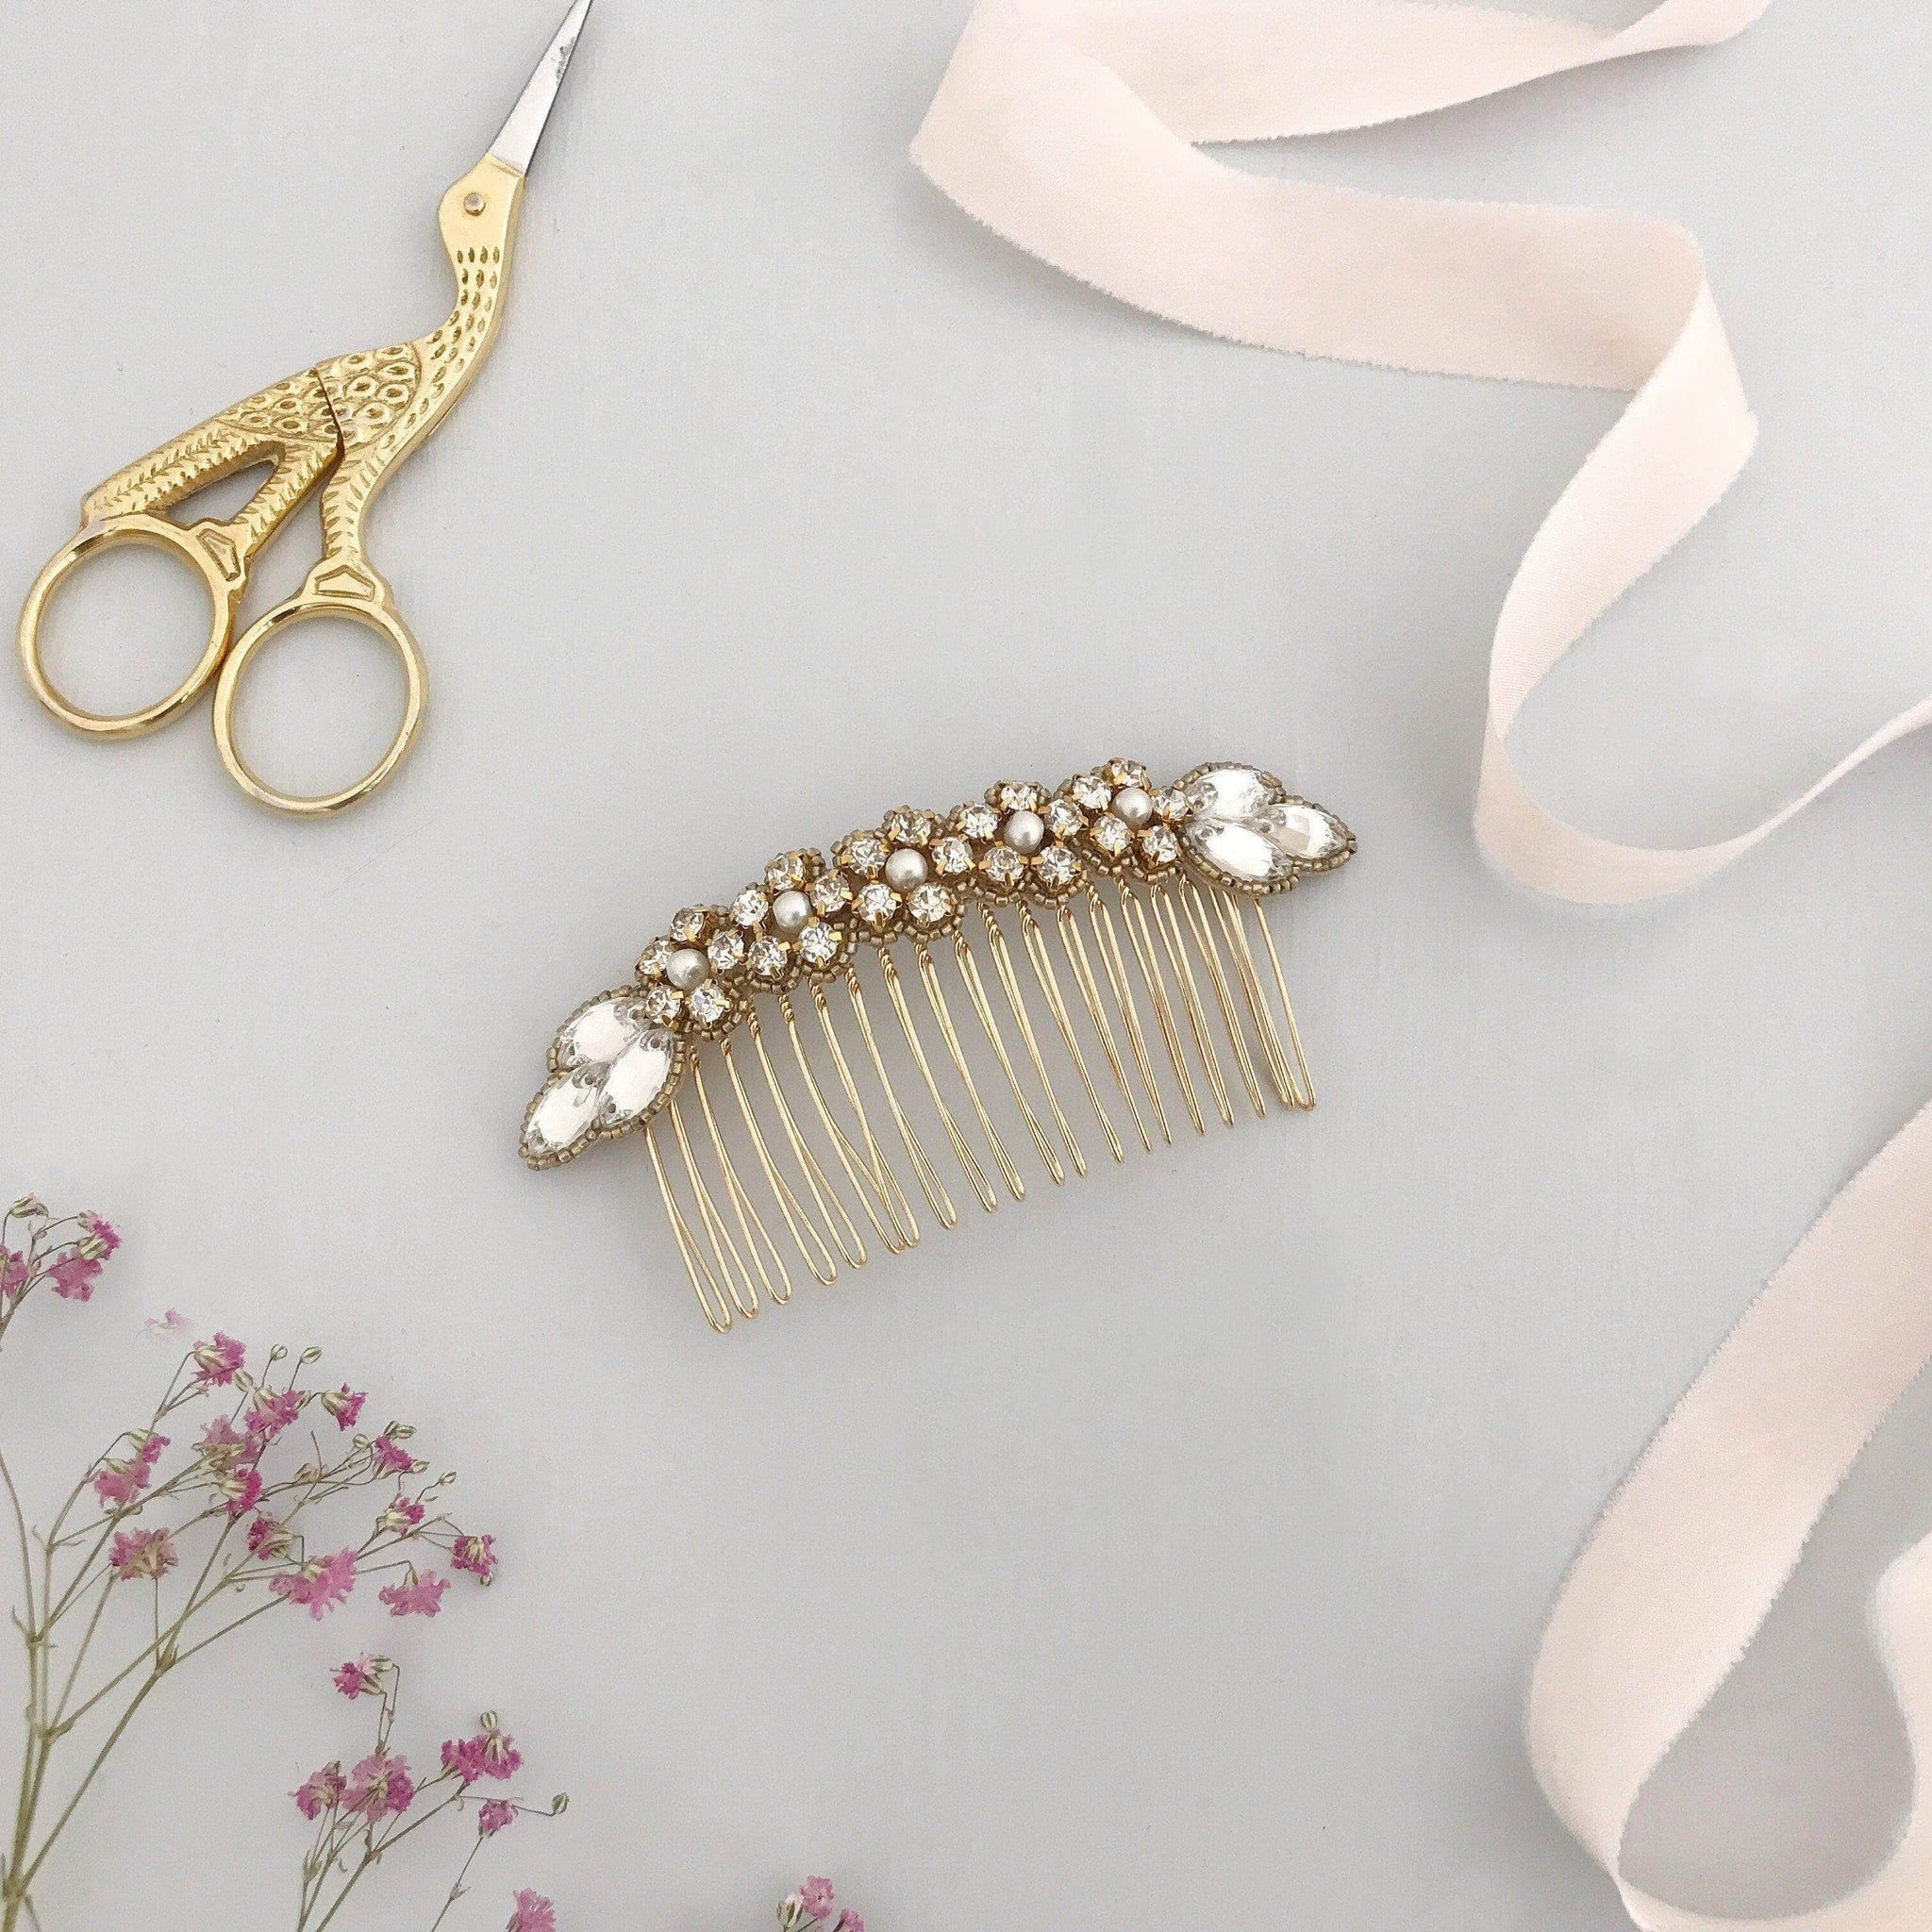 olivia gold wedding comb